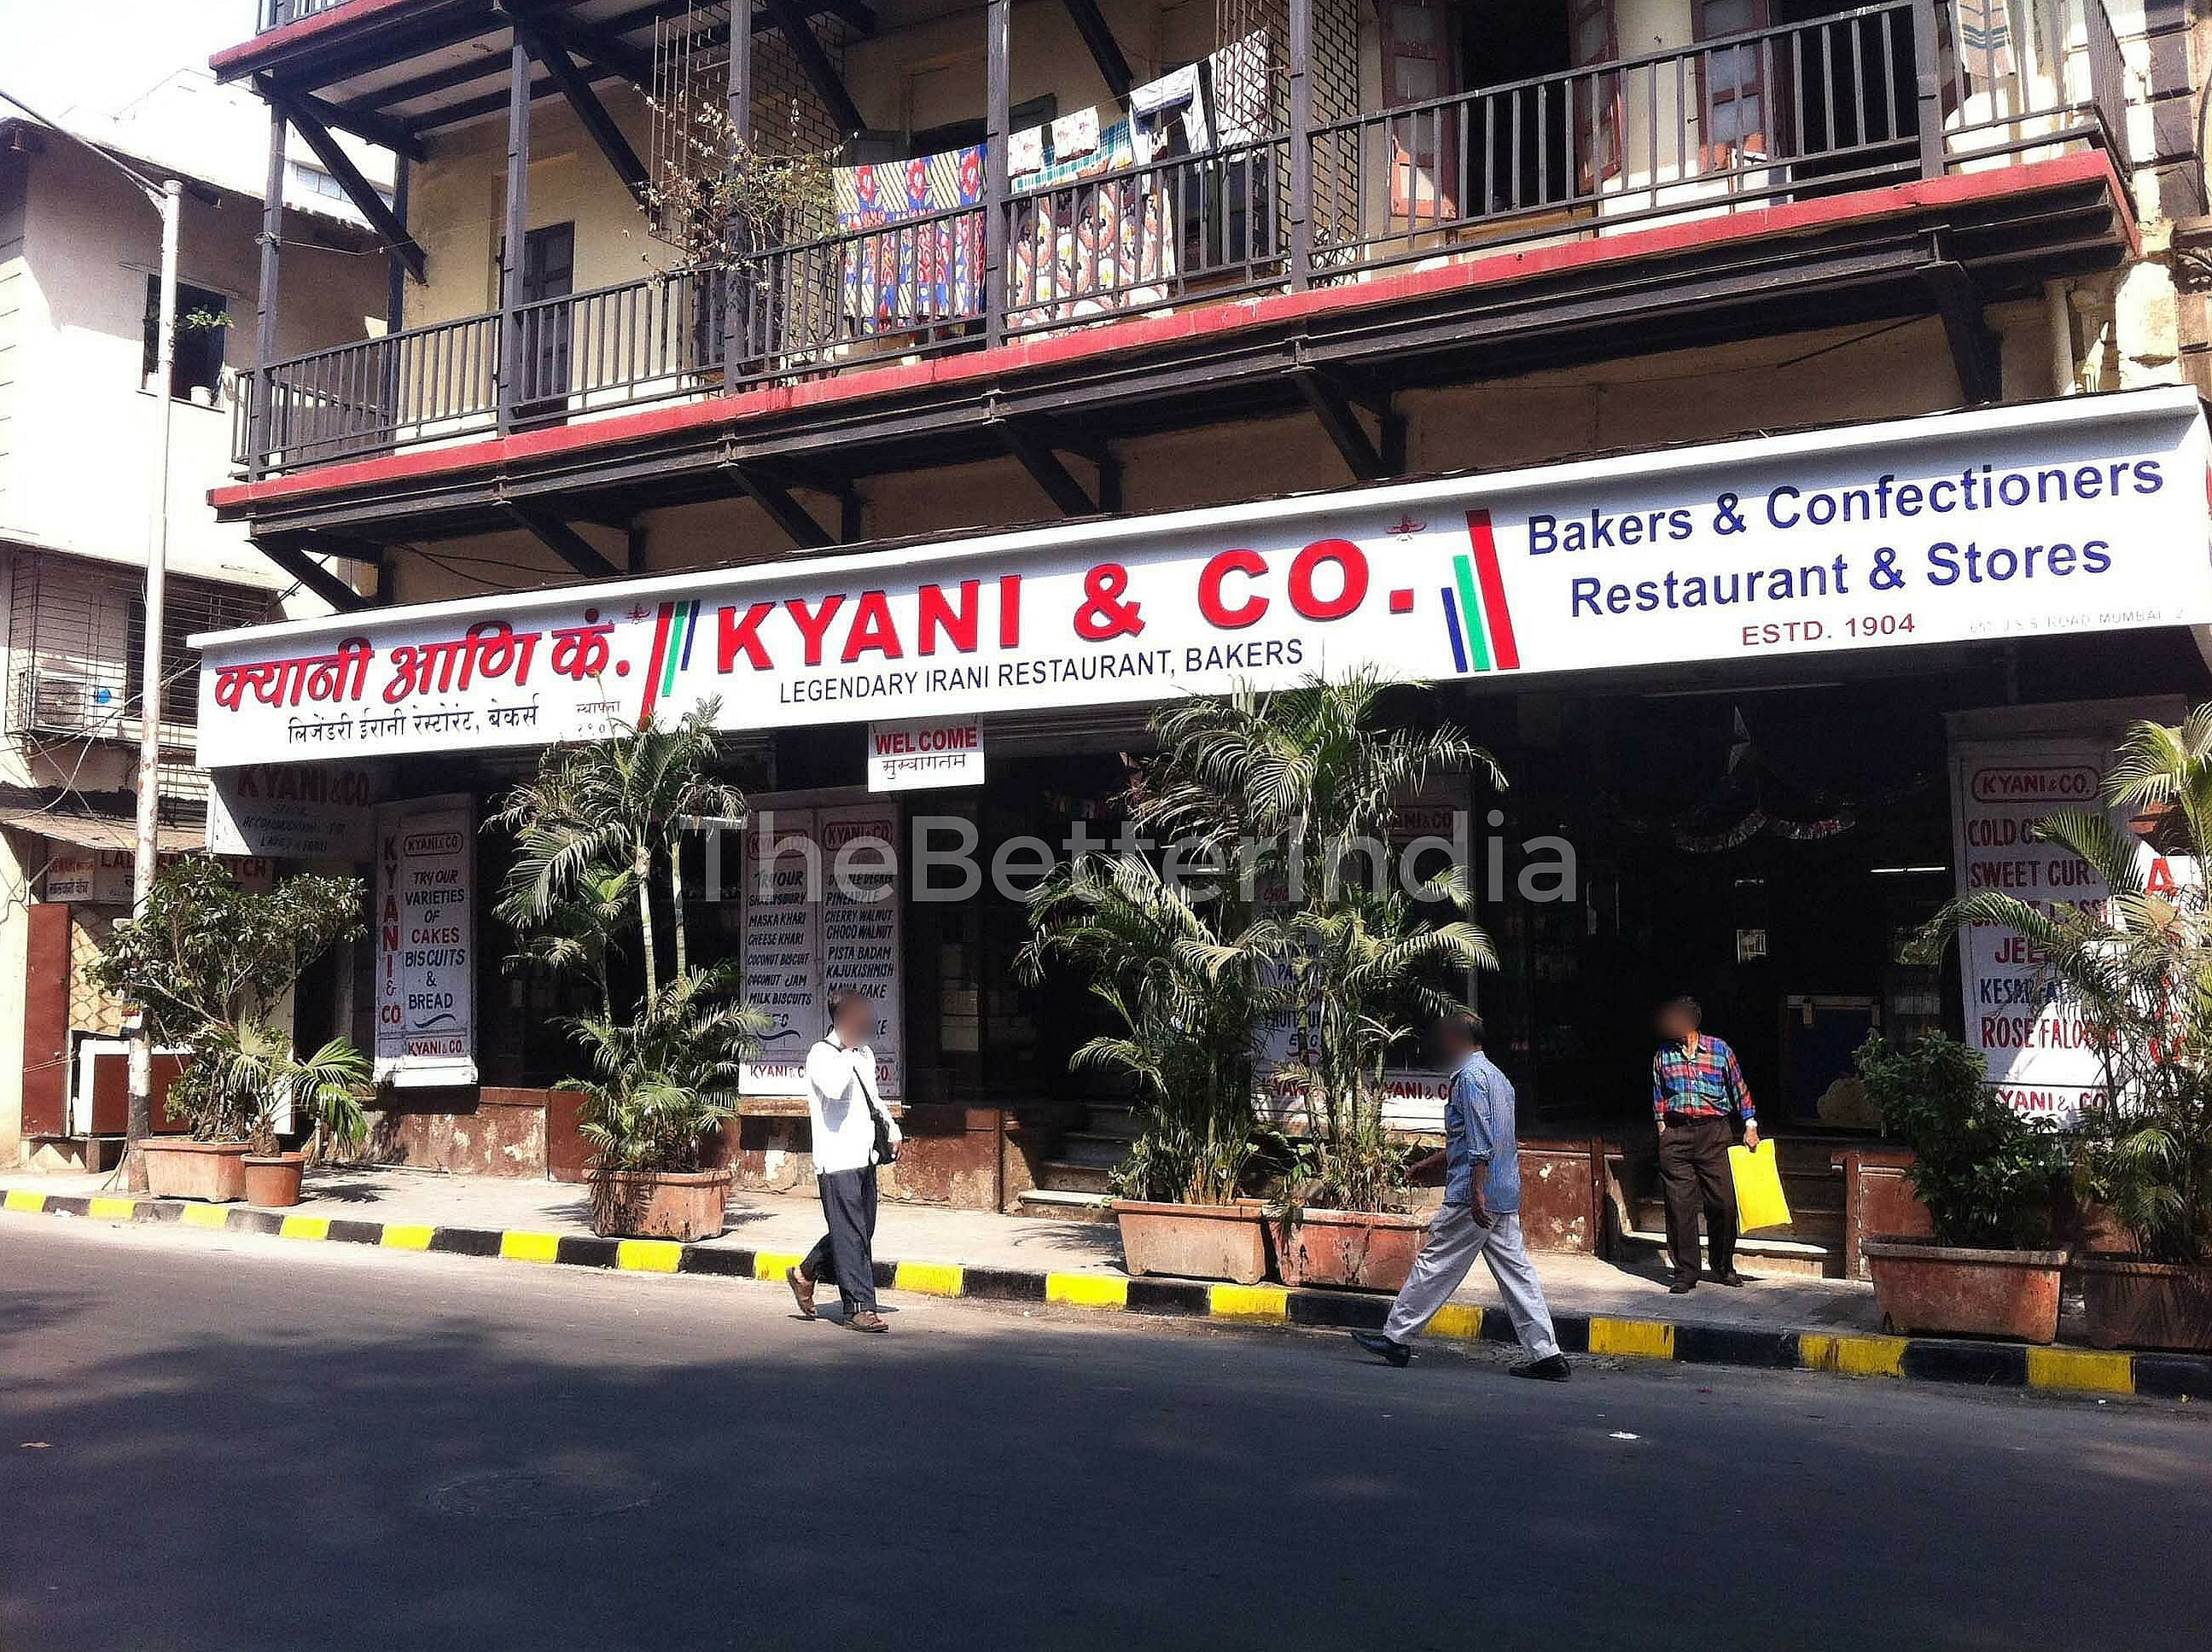 The iconic Kyani Bakery in Mumbai has been a favourite with café goers over the decades.